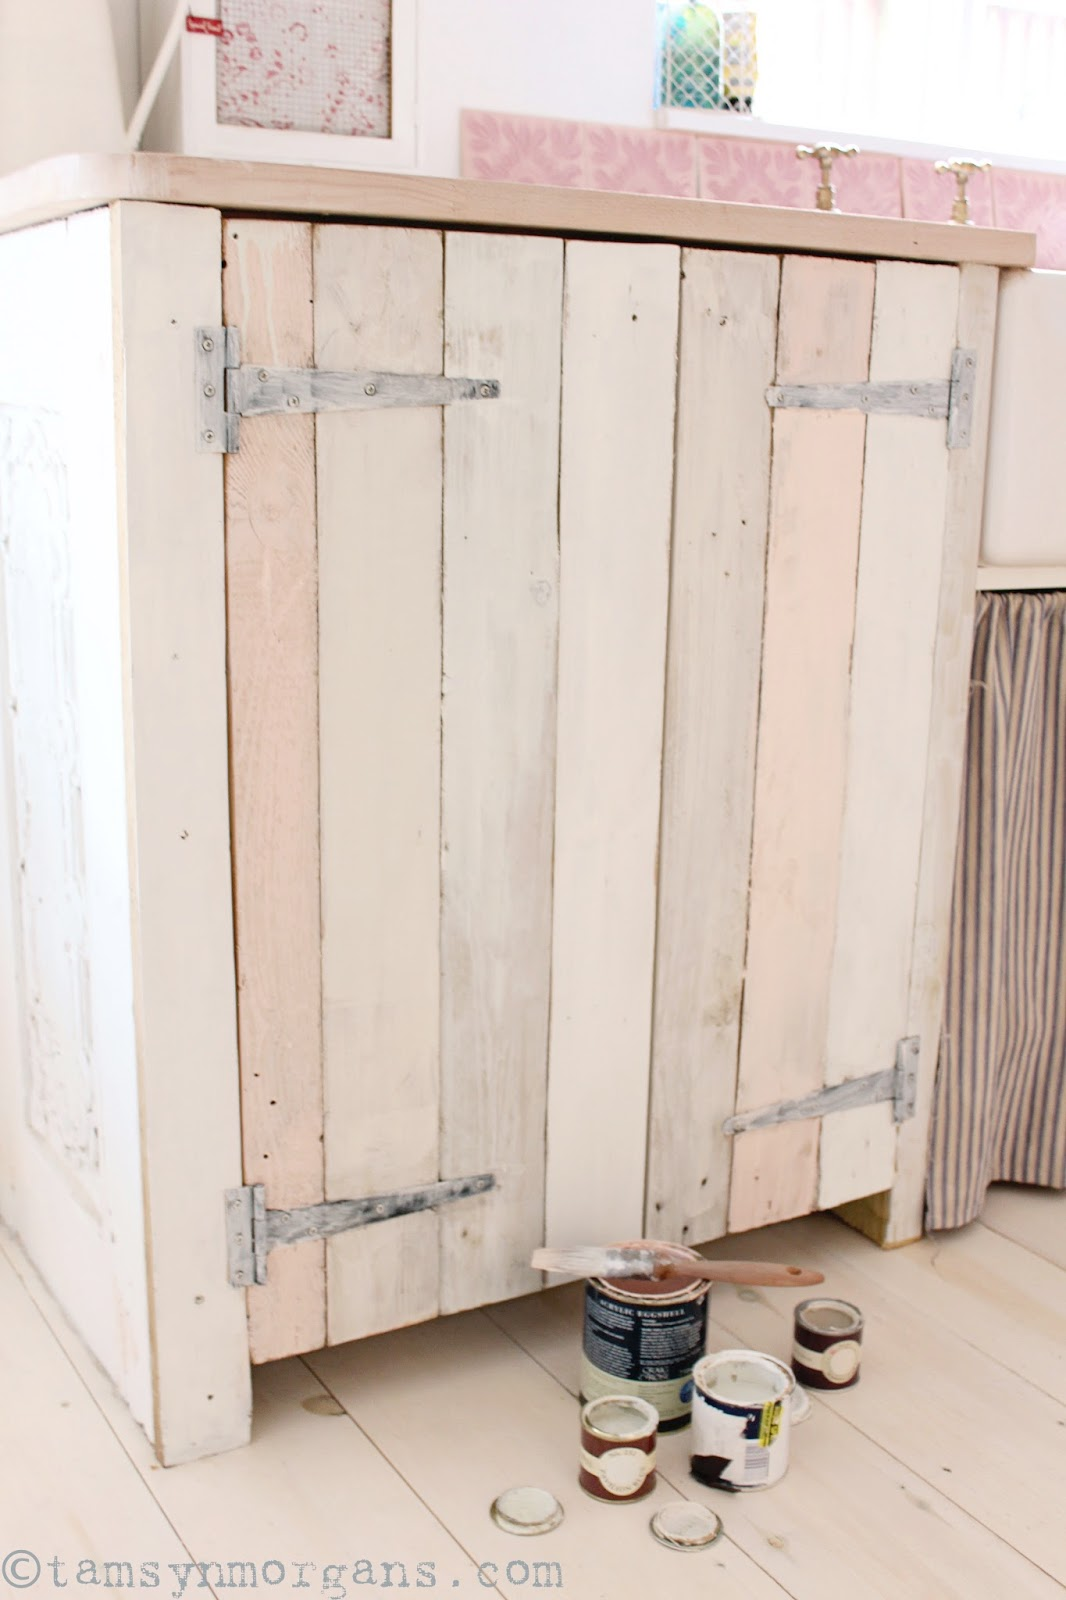 Upcycled Pallet Kitchen Cupboard – A Work in Progress